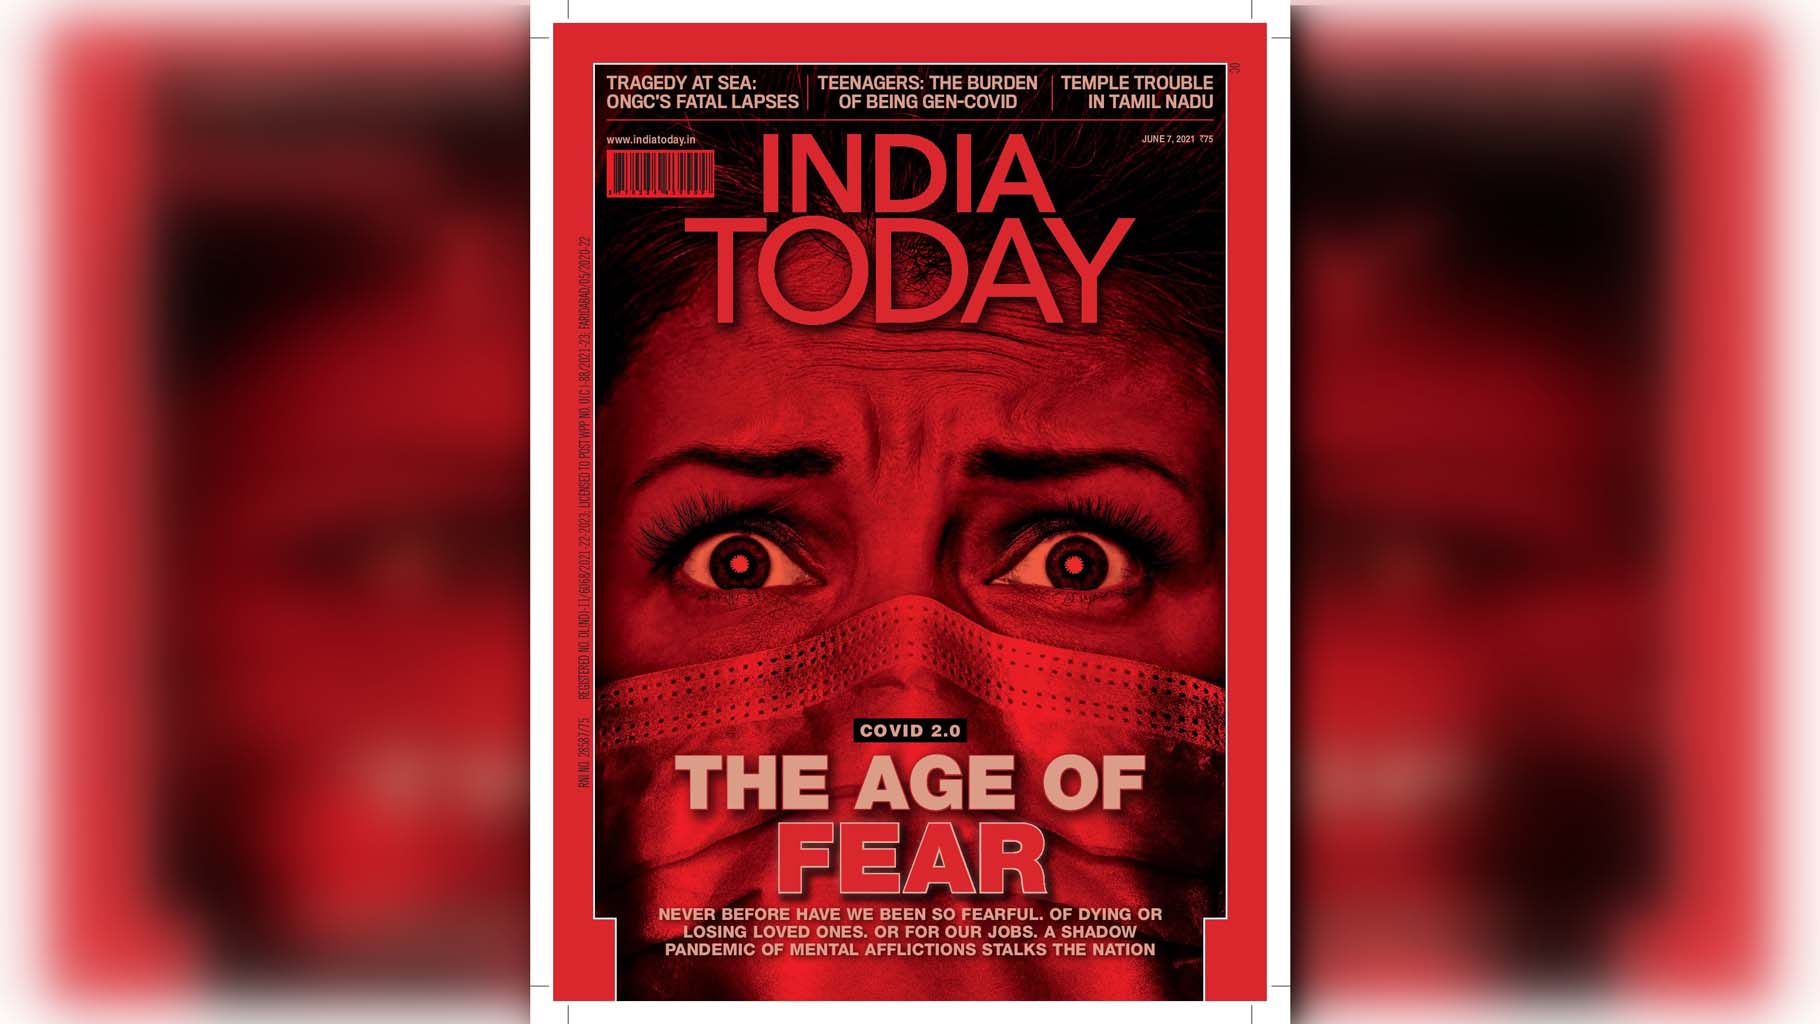 India today magazine, Covid-19 pandemic, Mental Health, Anxiety